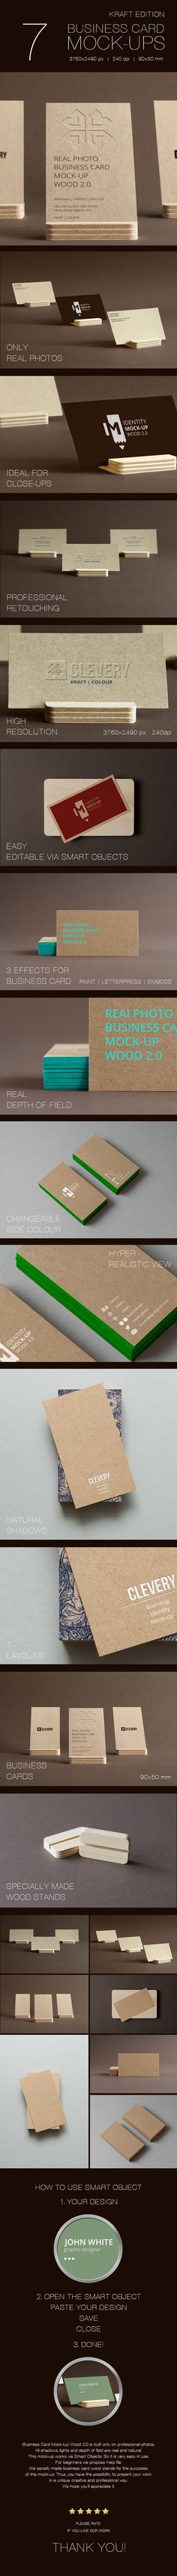 Branding / Identity / Business Card Mock-Up on Behance